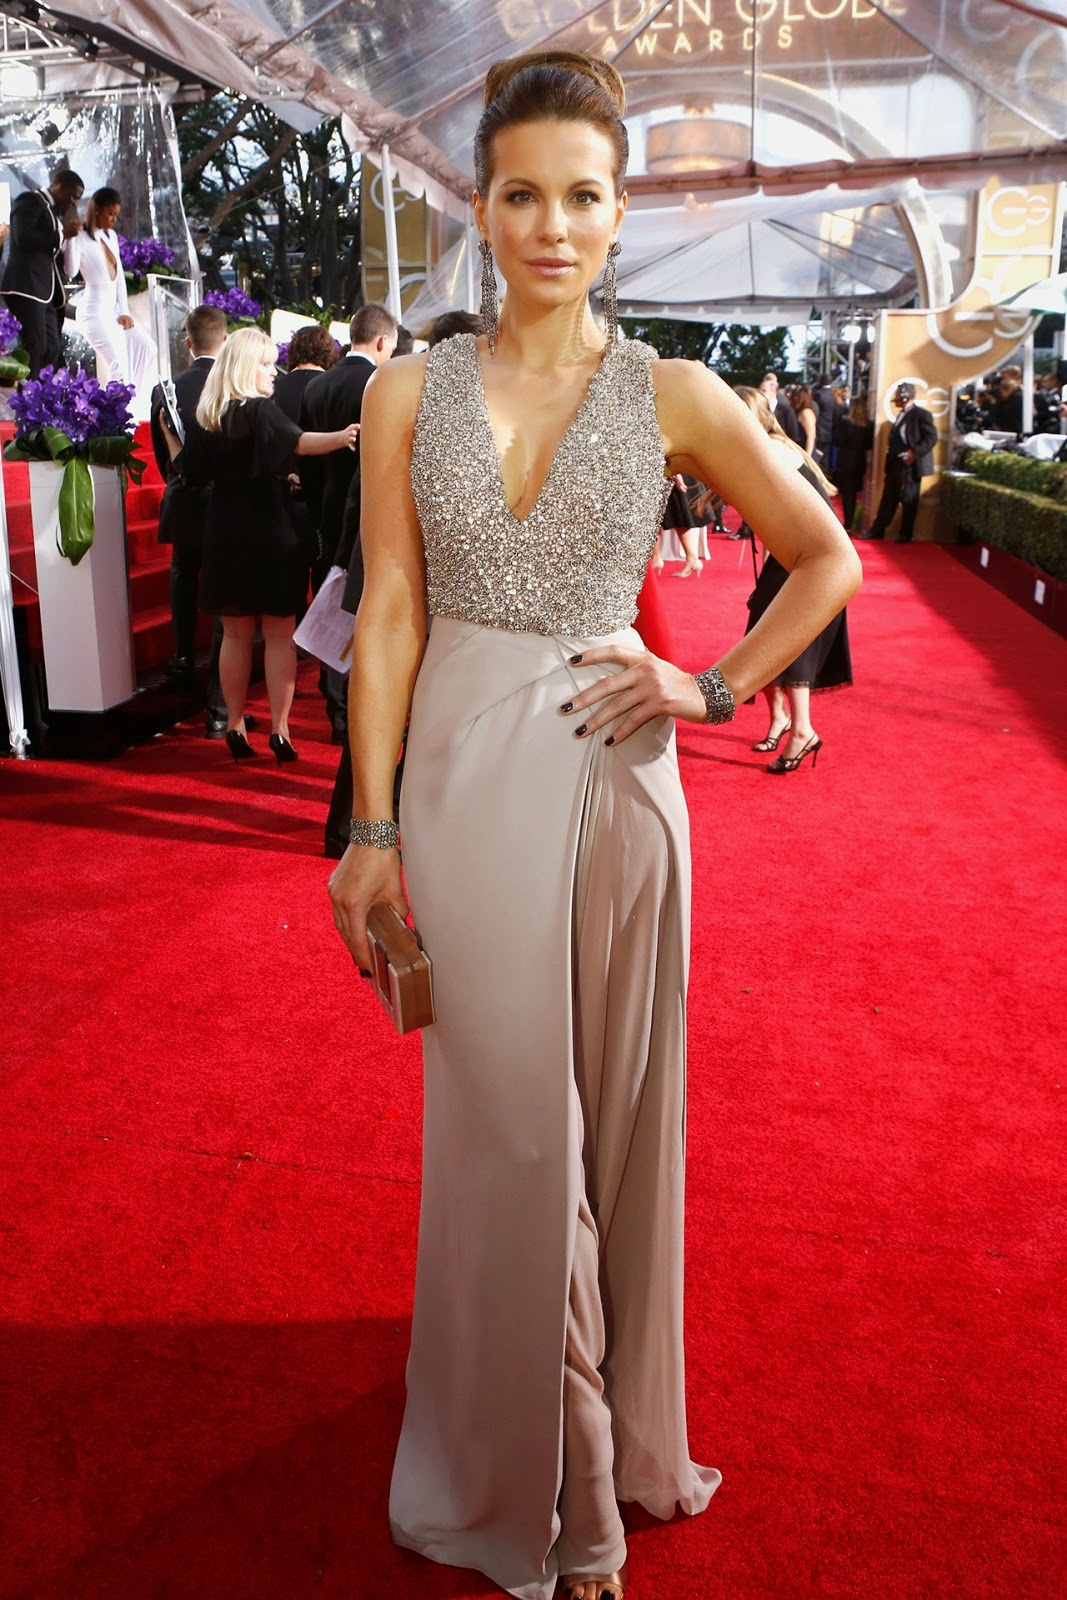 Kate Beckinsale in an Elie Saab gown at the Golden Globe Awards 2015